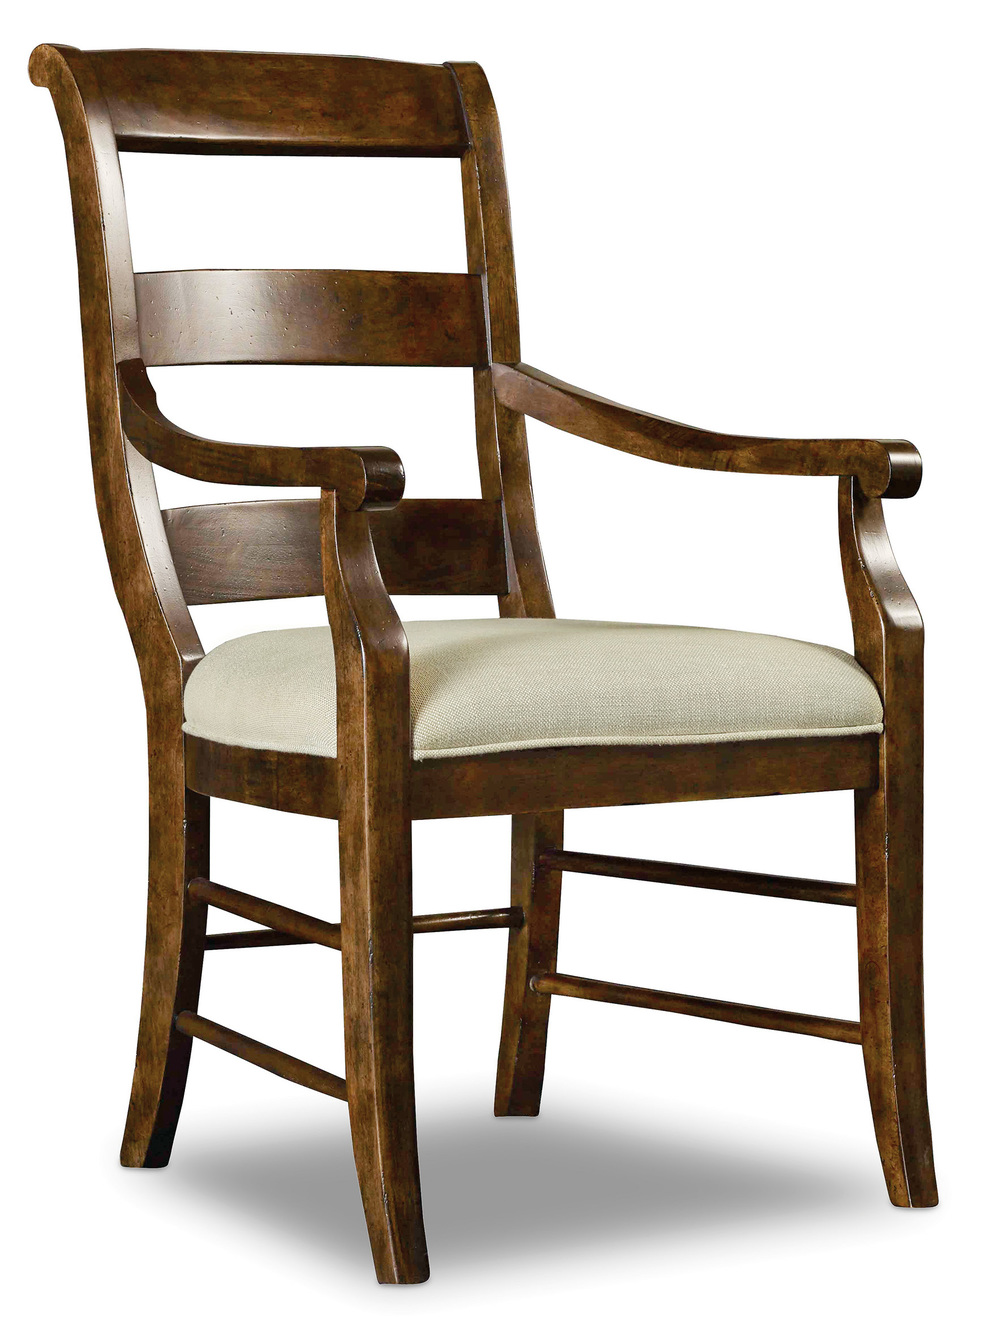 Hooker Furniture - Archivist Ladderback Arm Chair